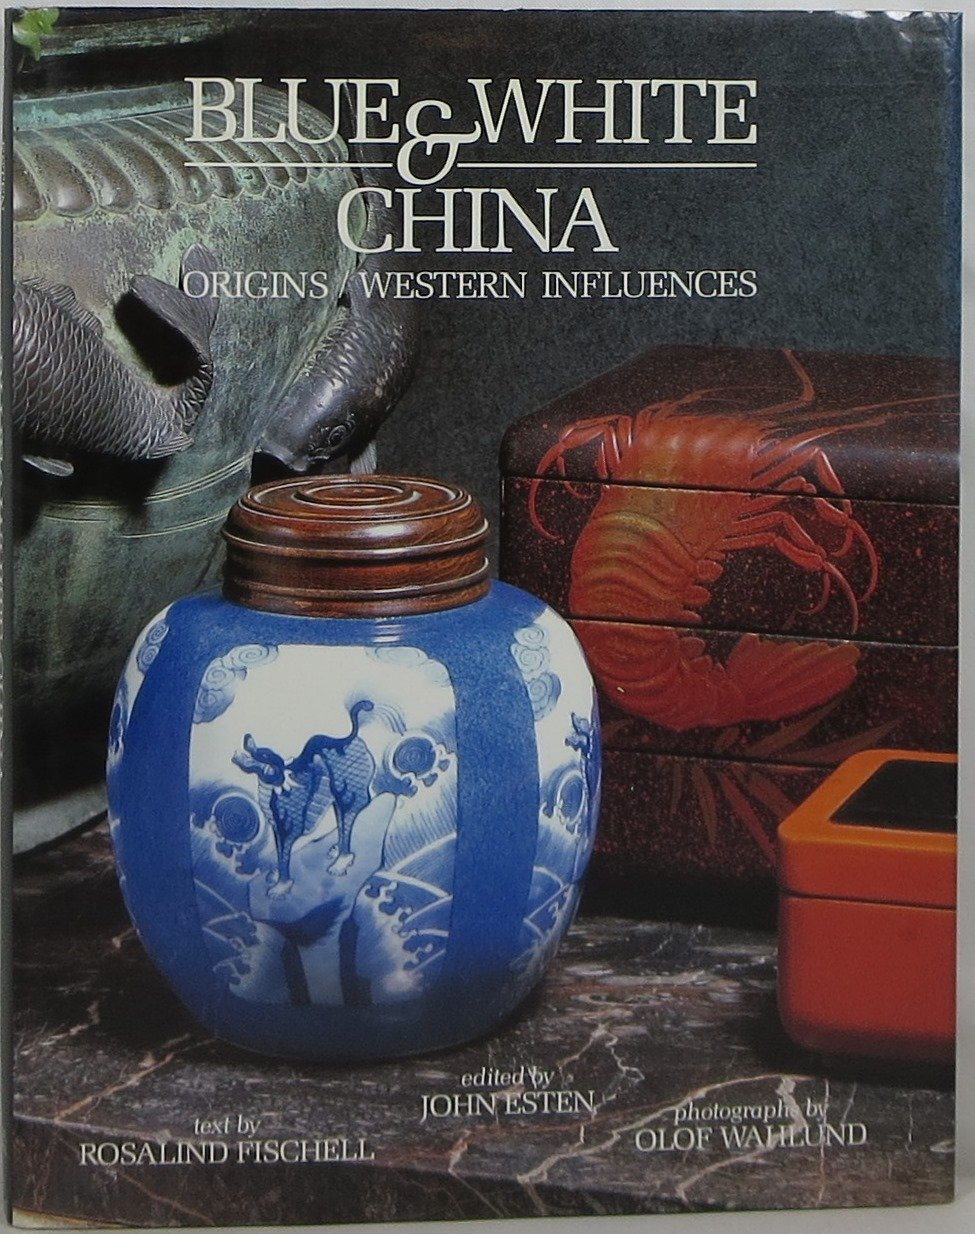 Blue and White China: Origins/Western Influences